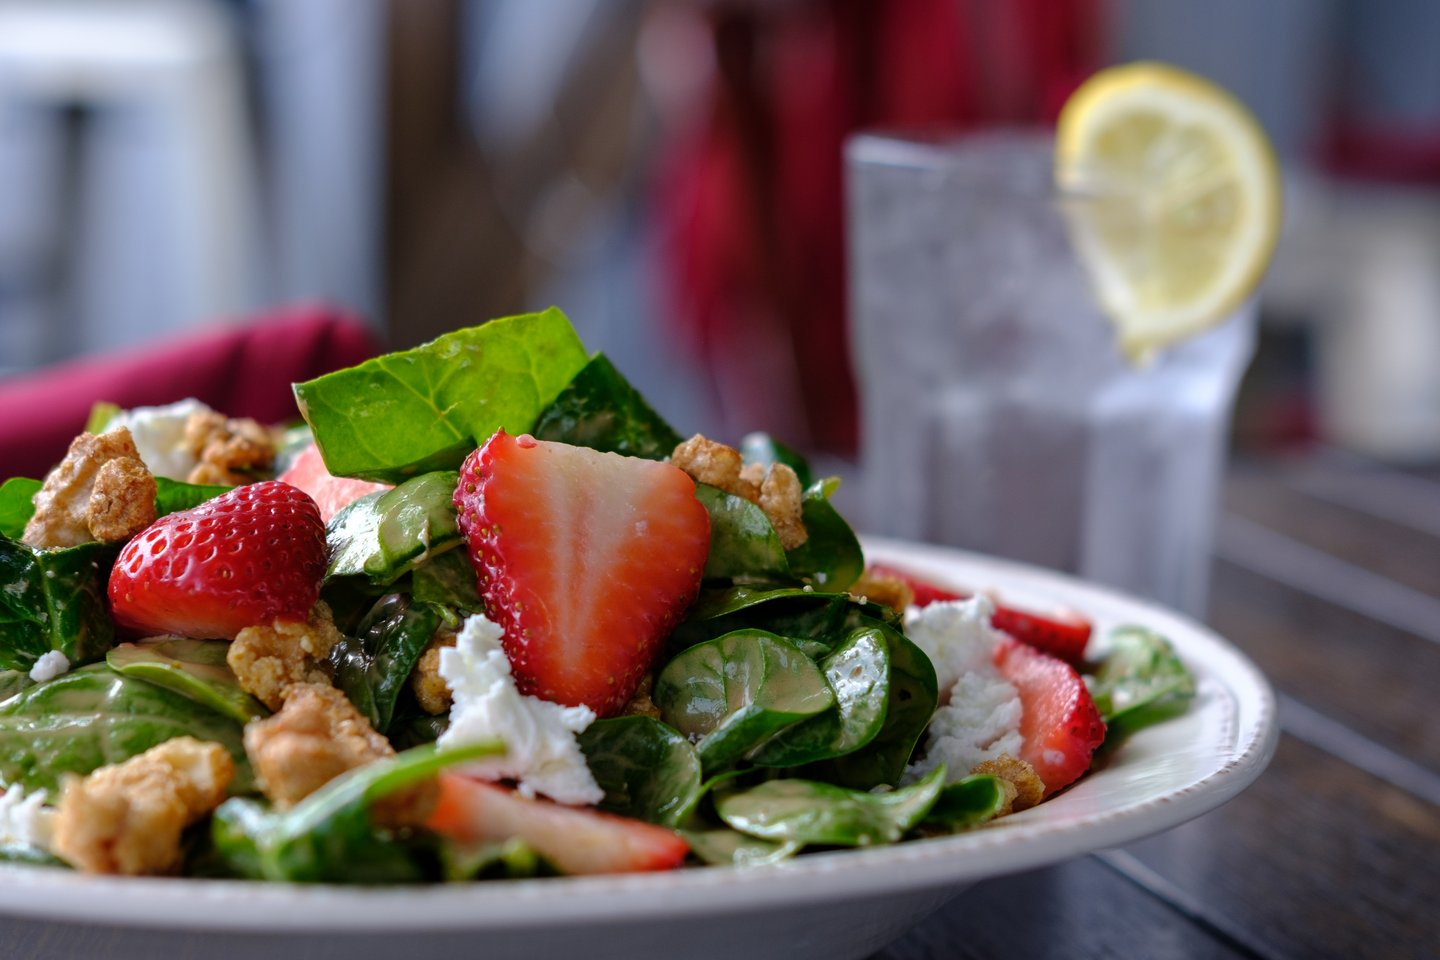 salad with strawberries and nuts